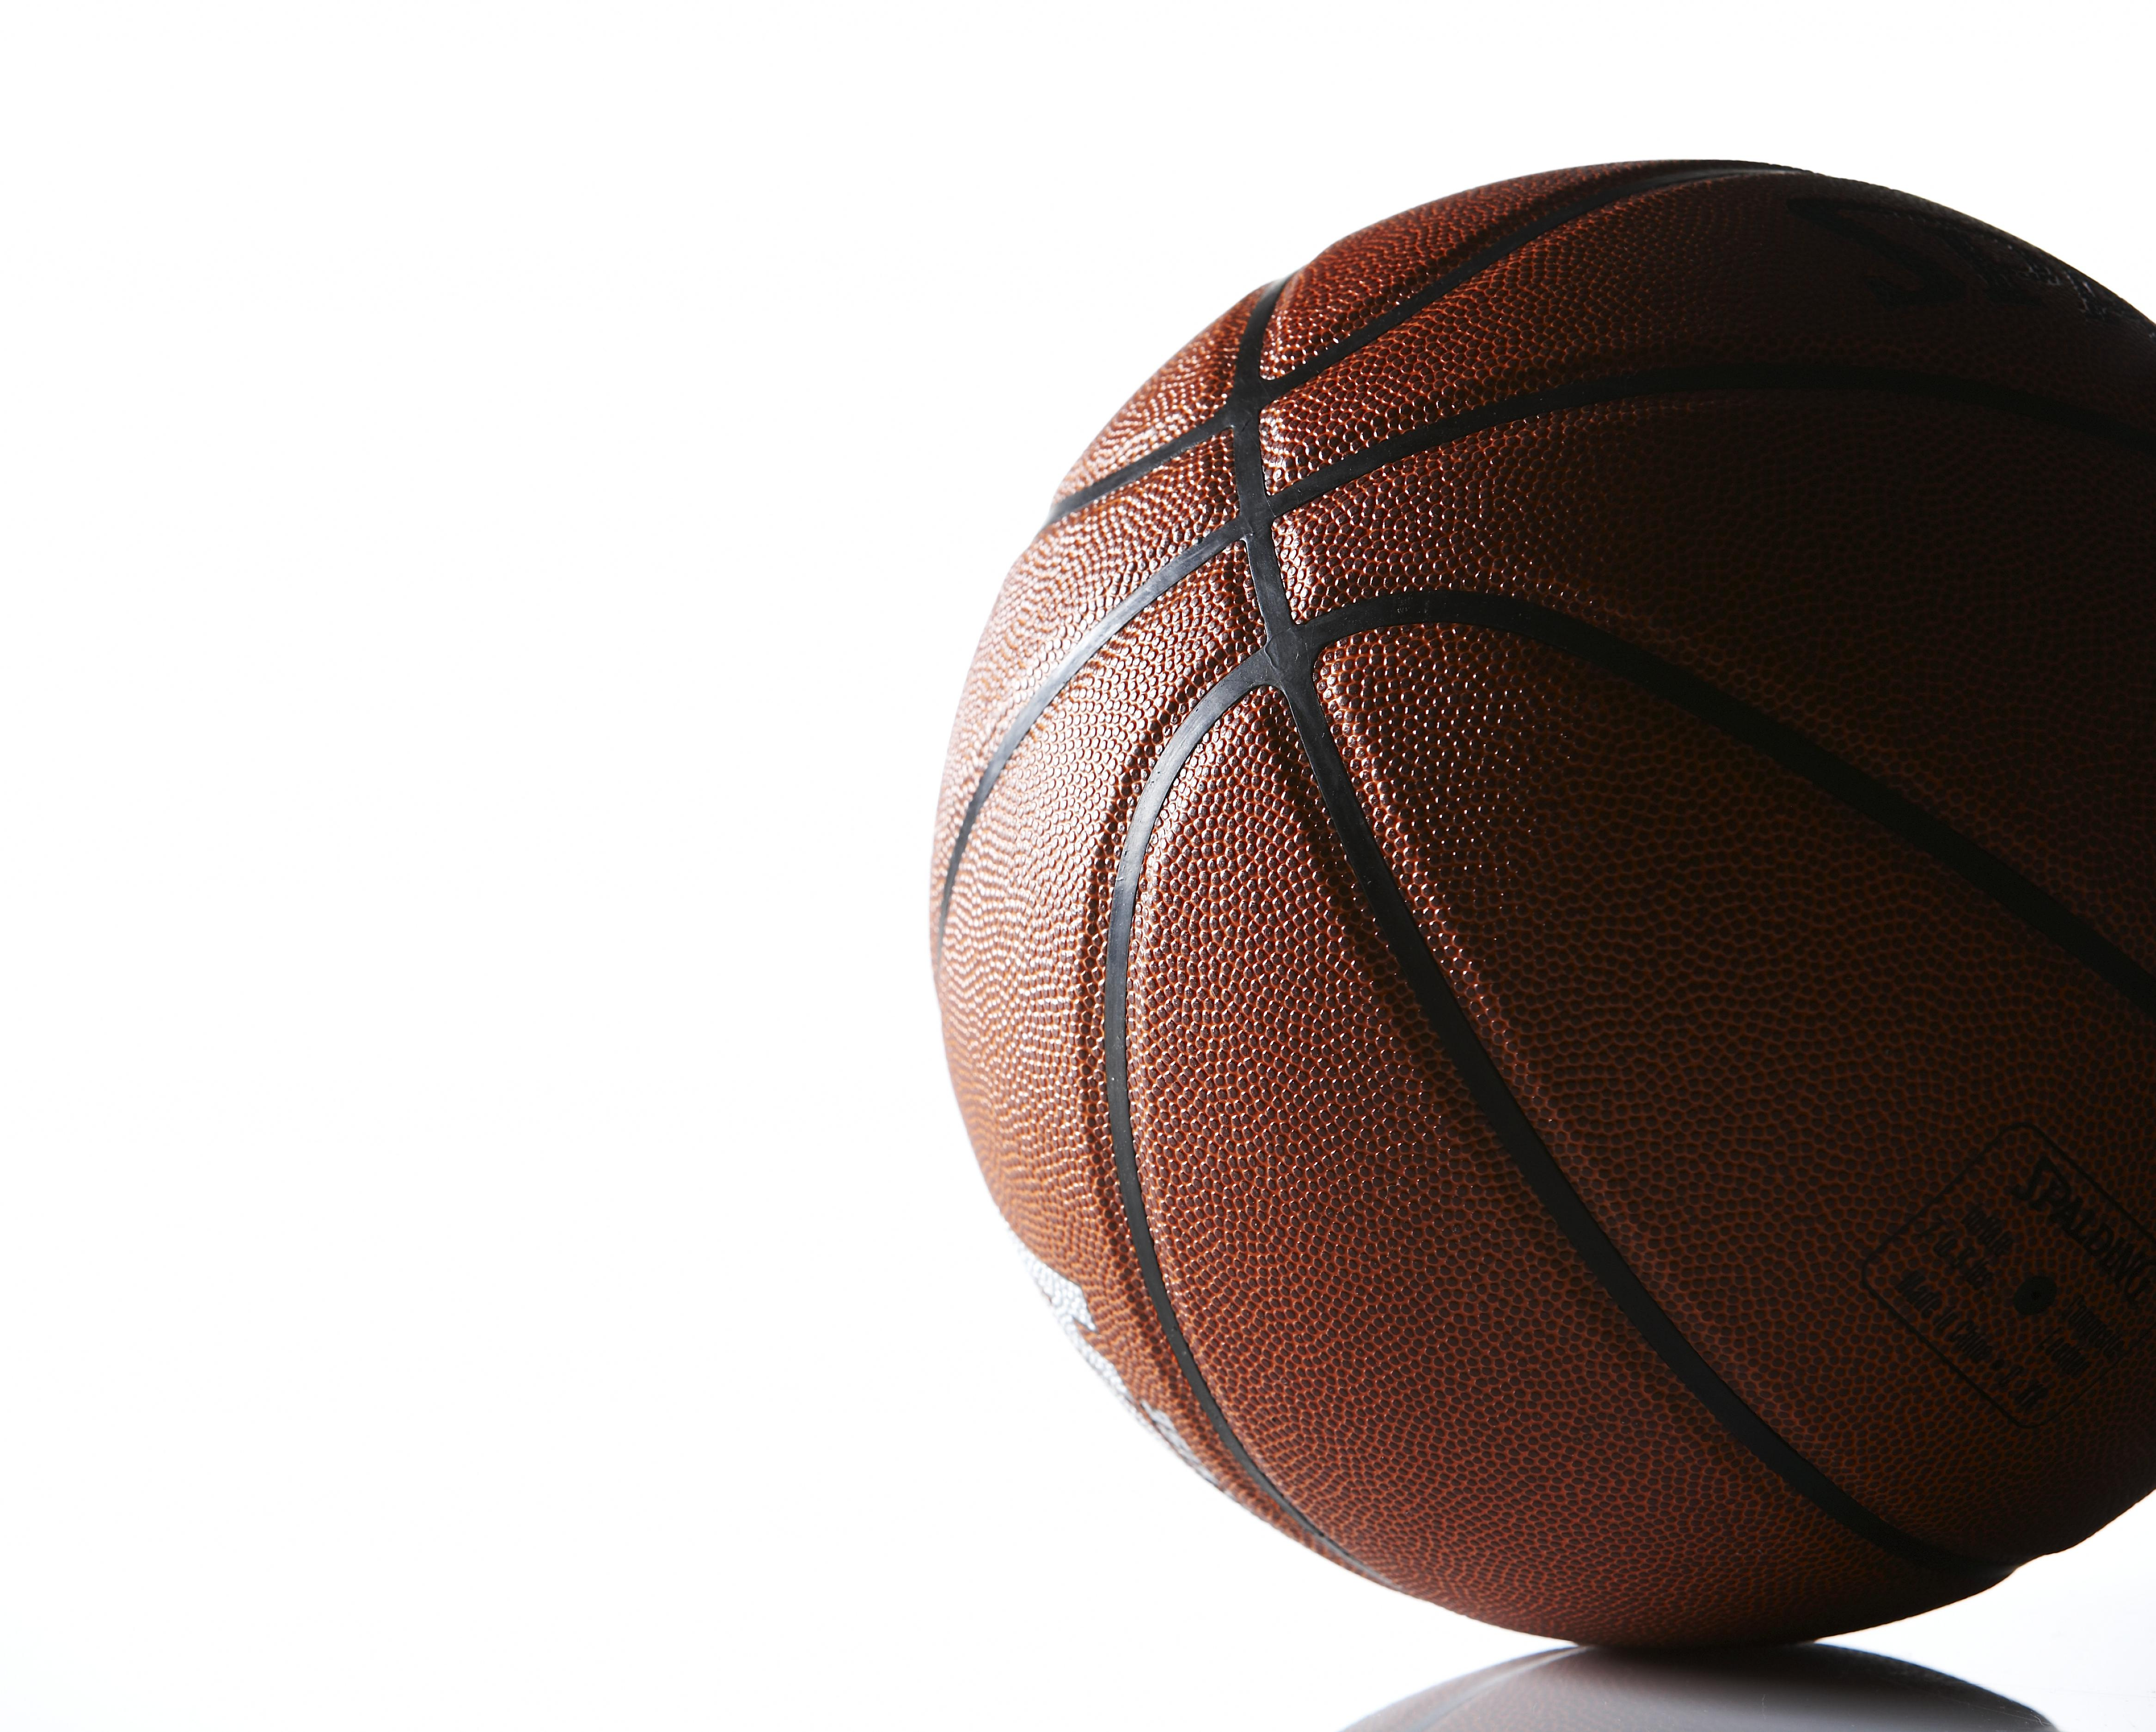 Basketball on white background